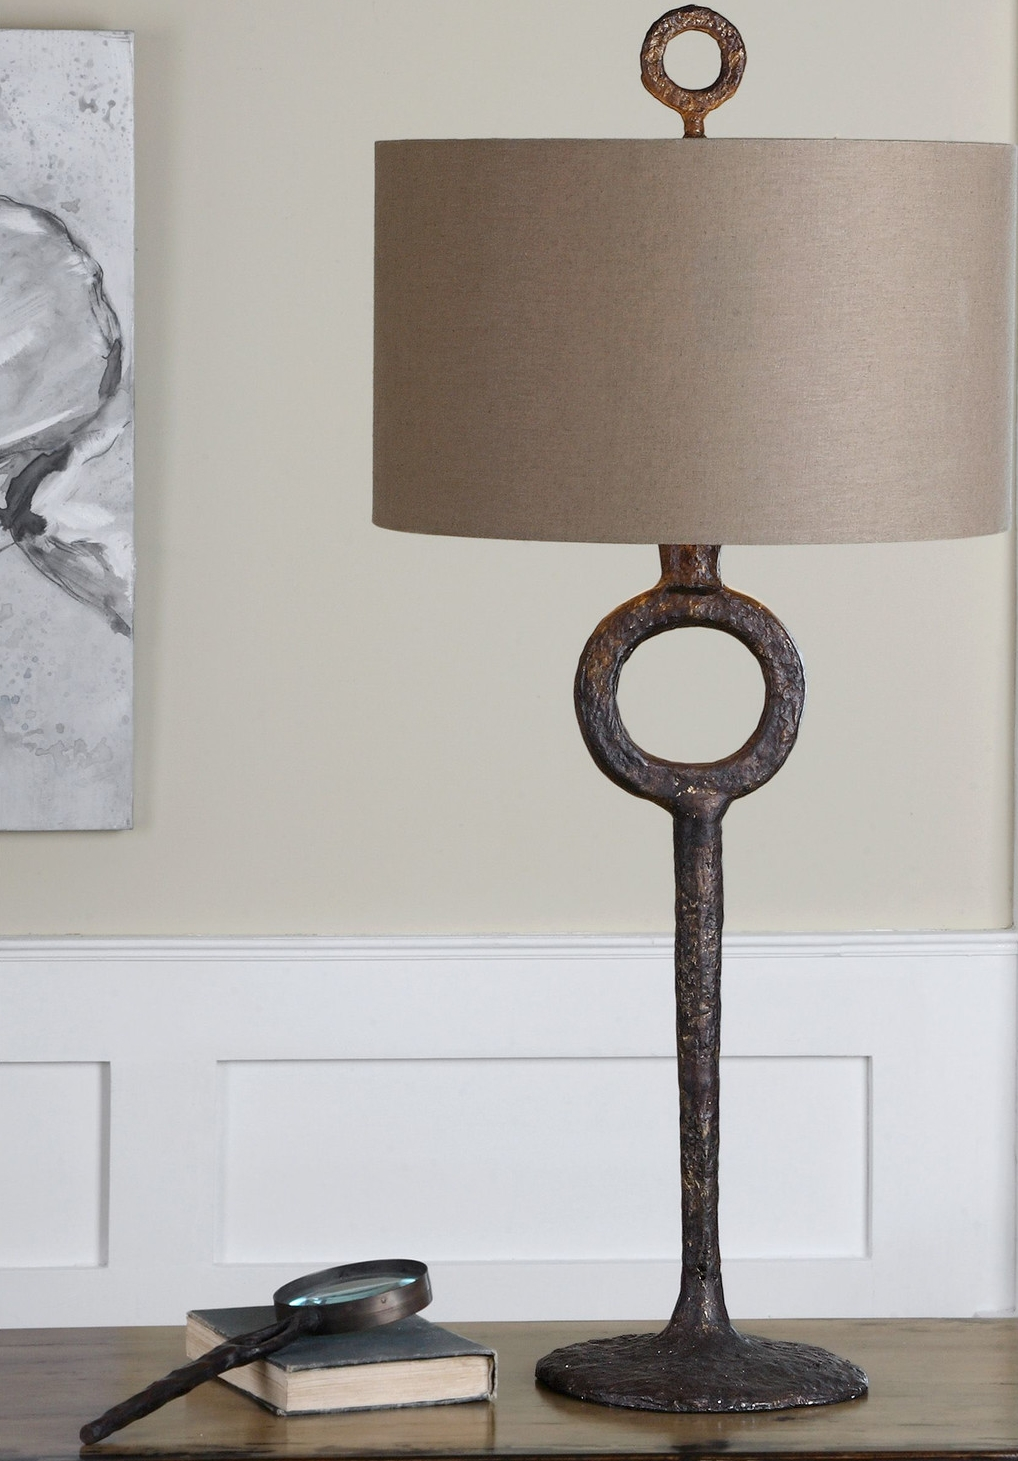 Uttermost-Ferro-34.75-H-Table-Lamp-with-Drum-Shade-27663.jpg